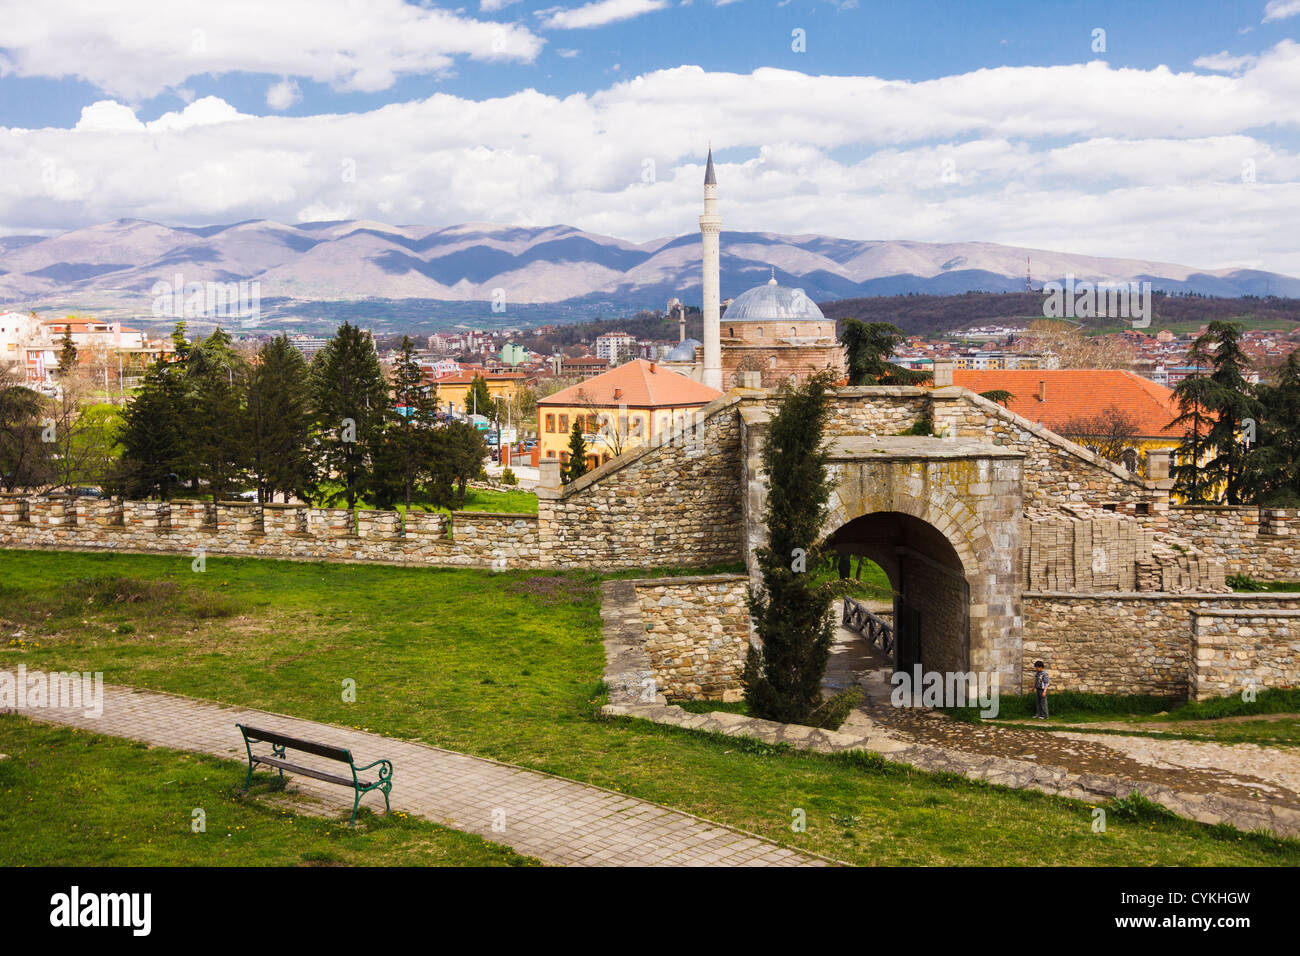 Kale fortress with Mustafa Pasha mosque in background. Skopje, Macedonia - Stock Image